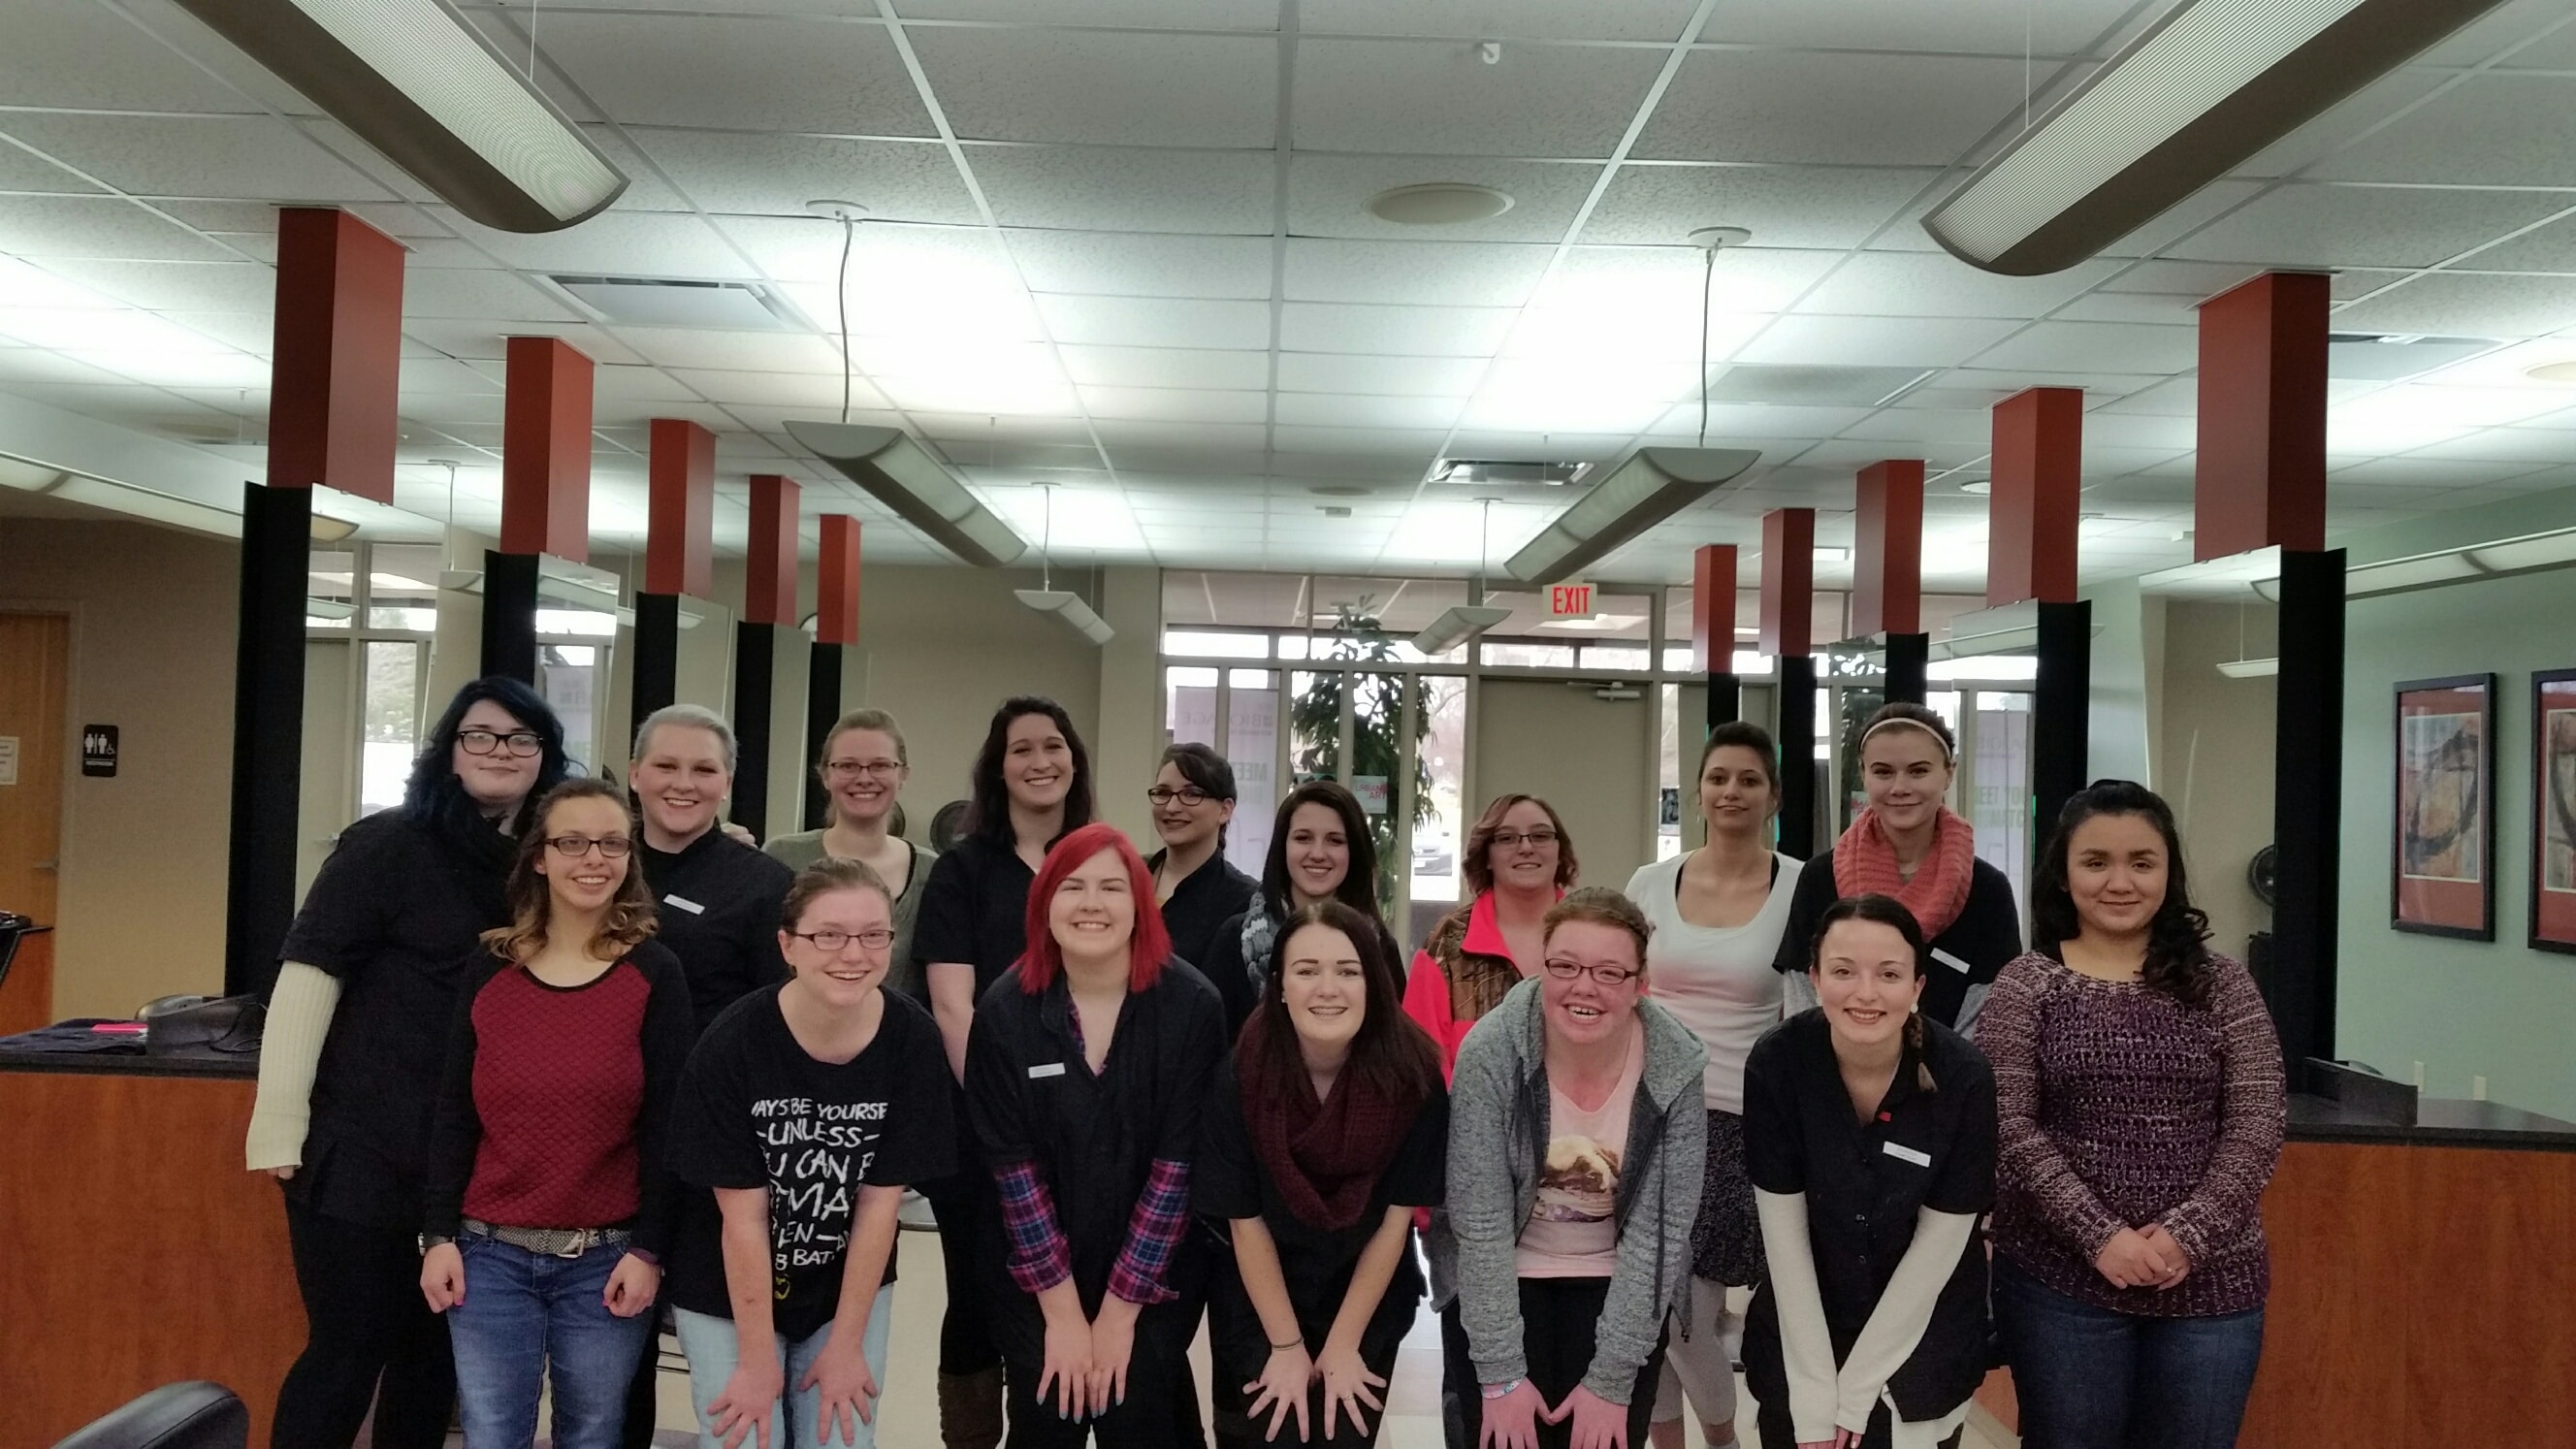 moraine park cosmetology students gather for group photo in salon